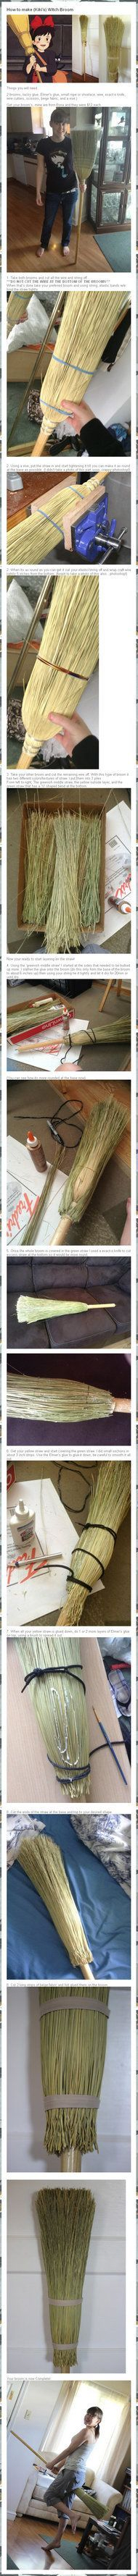 how to redo a reg broom to look like kiki's broom from kiki's delivery service